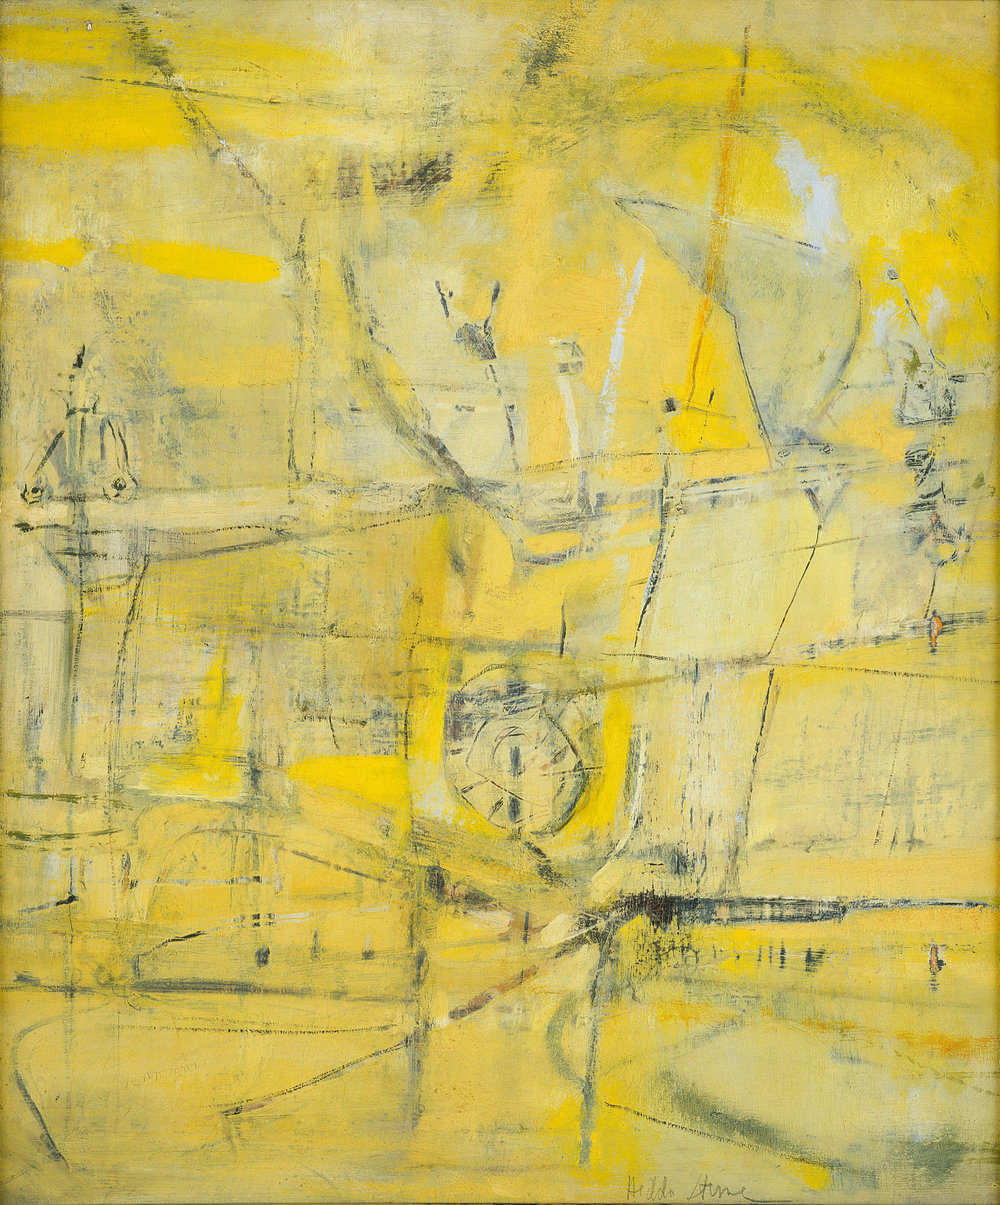 Hedda Sterne,  Yellow Structure,  1952, Oil on canvas, 24 1/4 in. x 20 1/4 in.